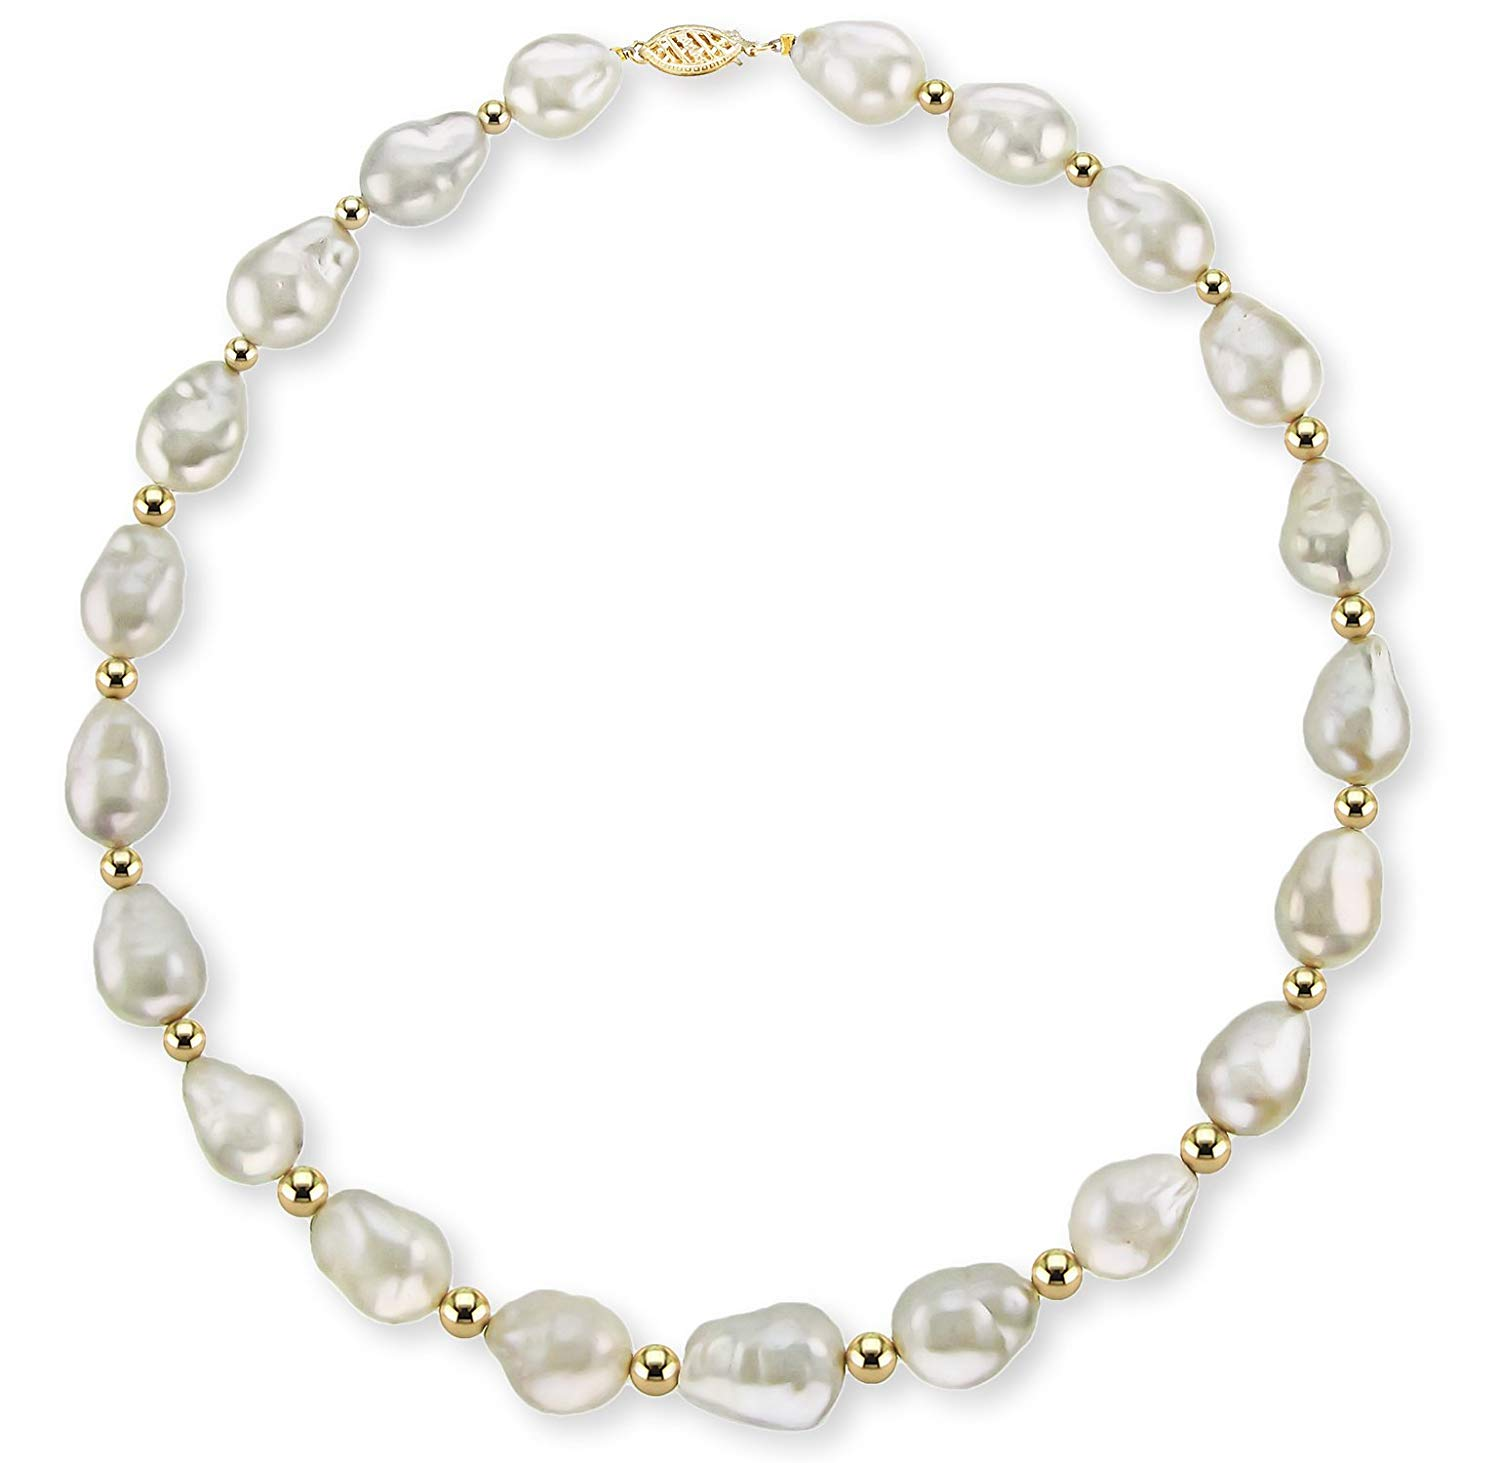 """La Regis Jewelry 14k Yellow Gold 10-12mm White Baroque Freshwater Cultured Pearl Necklace with Yellow Gold Beads, 18"""""""